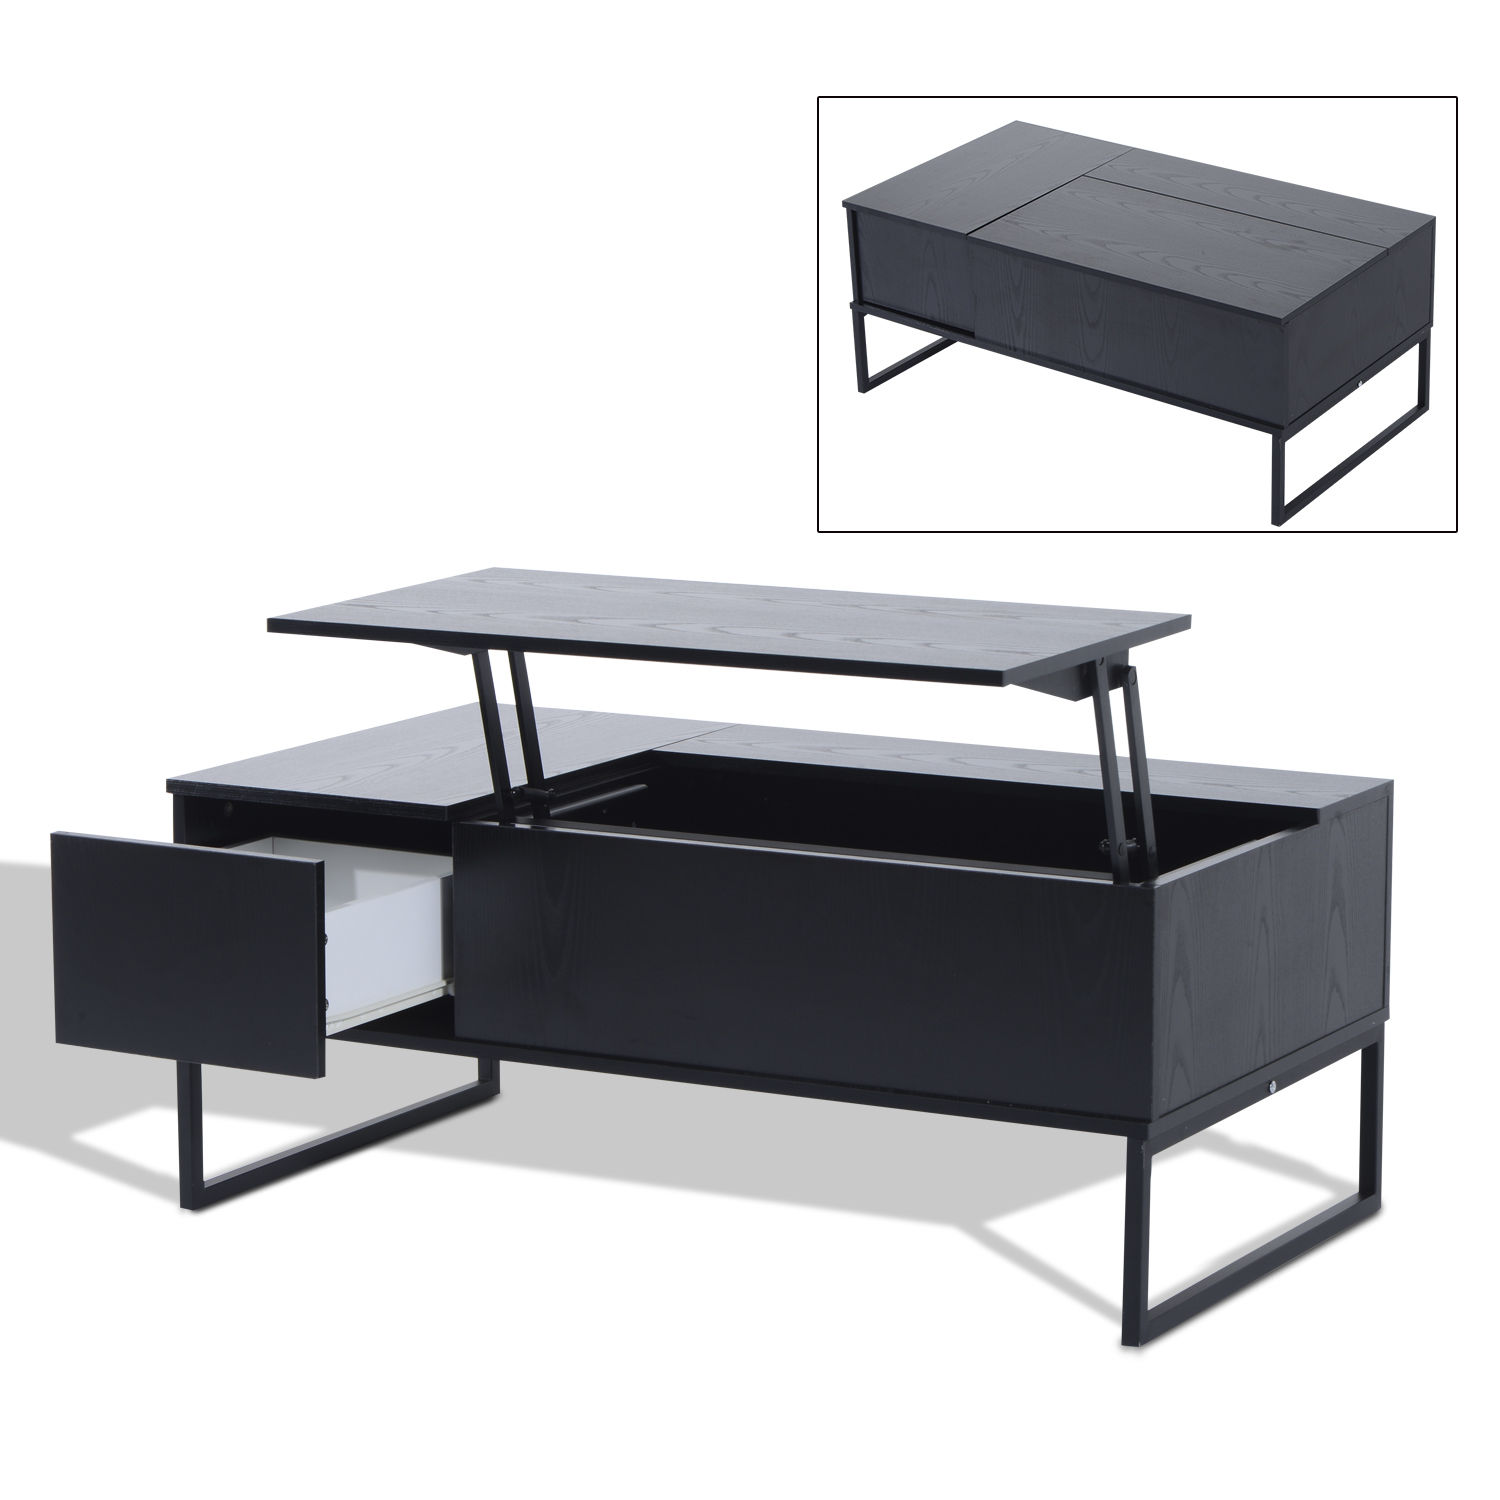 Lift Top Coffee Table Black.Details About Foldable Wood Lift Top Coffee Table Convertible Tea Desk Furniture Black